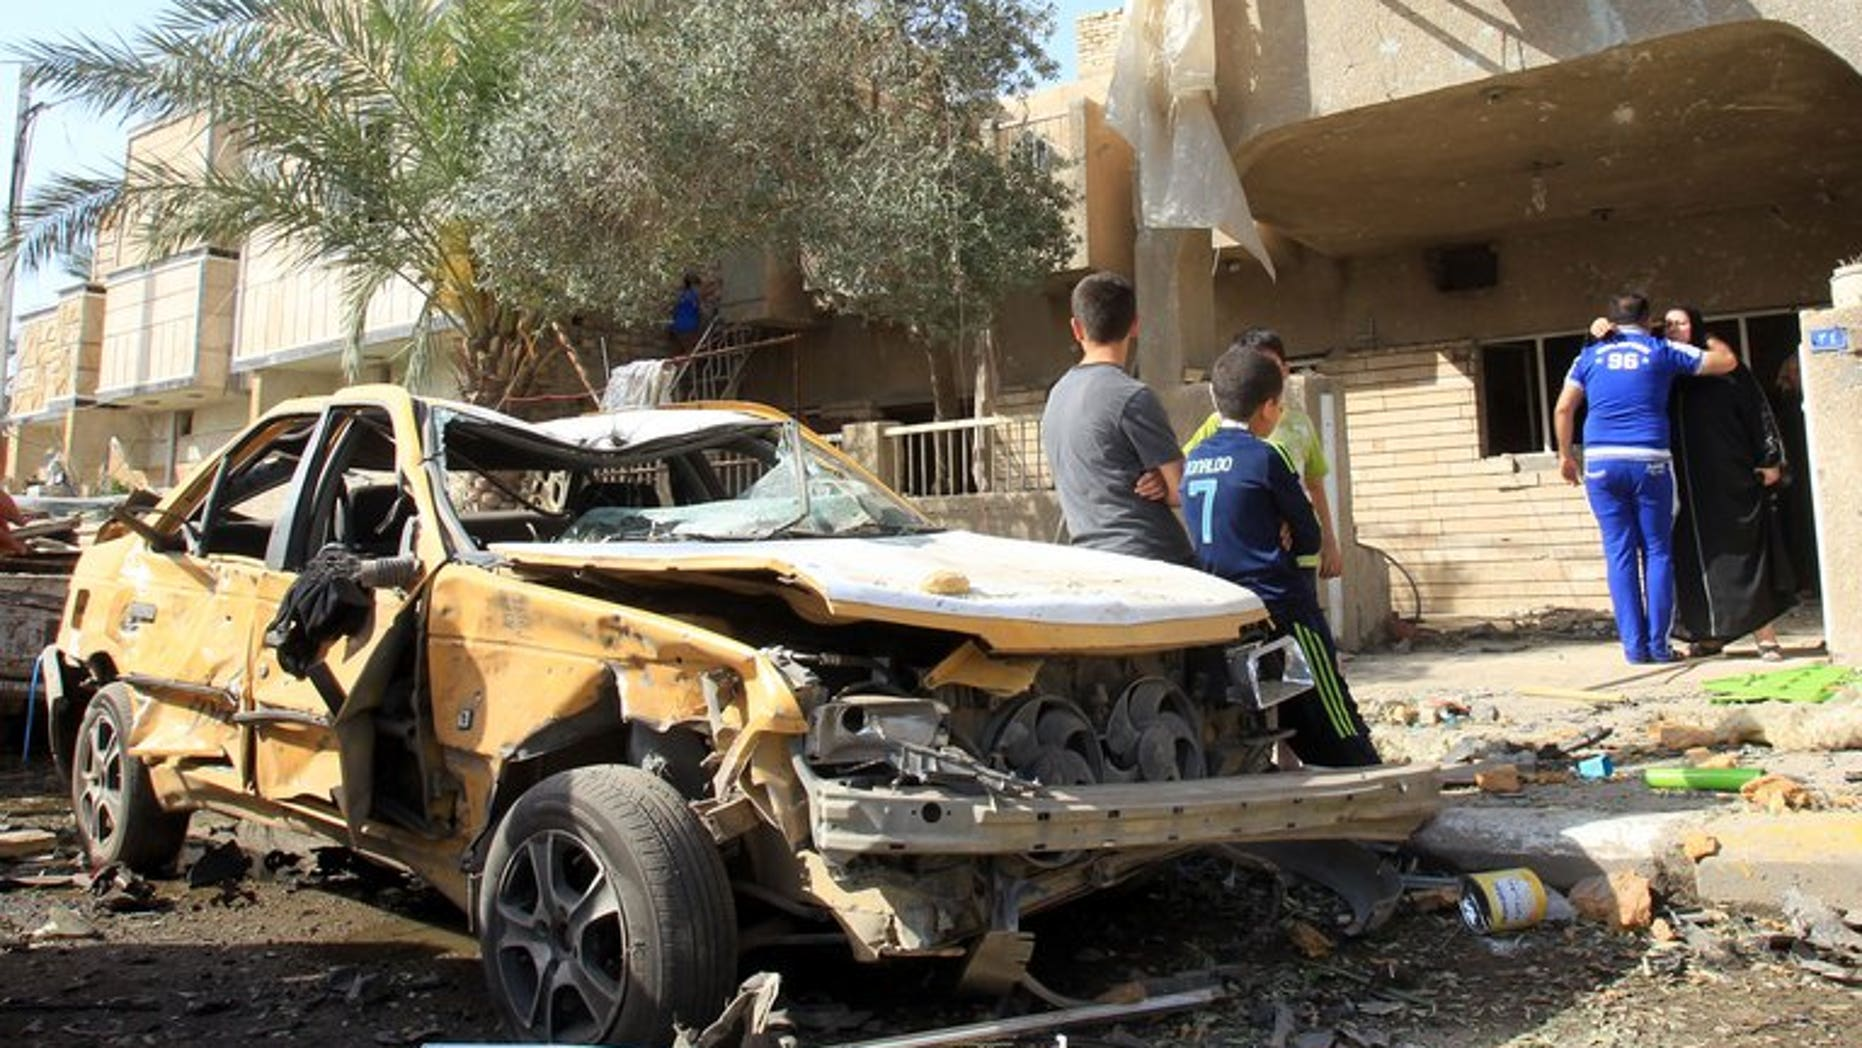 Iraqis sit on a damaged car after a car bomb explosion near a Shiite Islamic center in the Baghdad neighbourhood of Qahira on March 29, 2013. A car bomb followed by a suicide bombing targeting people mourning a Shiite man killed 10 people and wounded 22 in Iraq on Thursday, police and a doctor said.